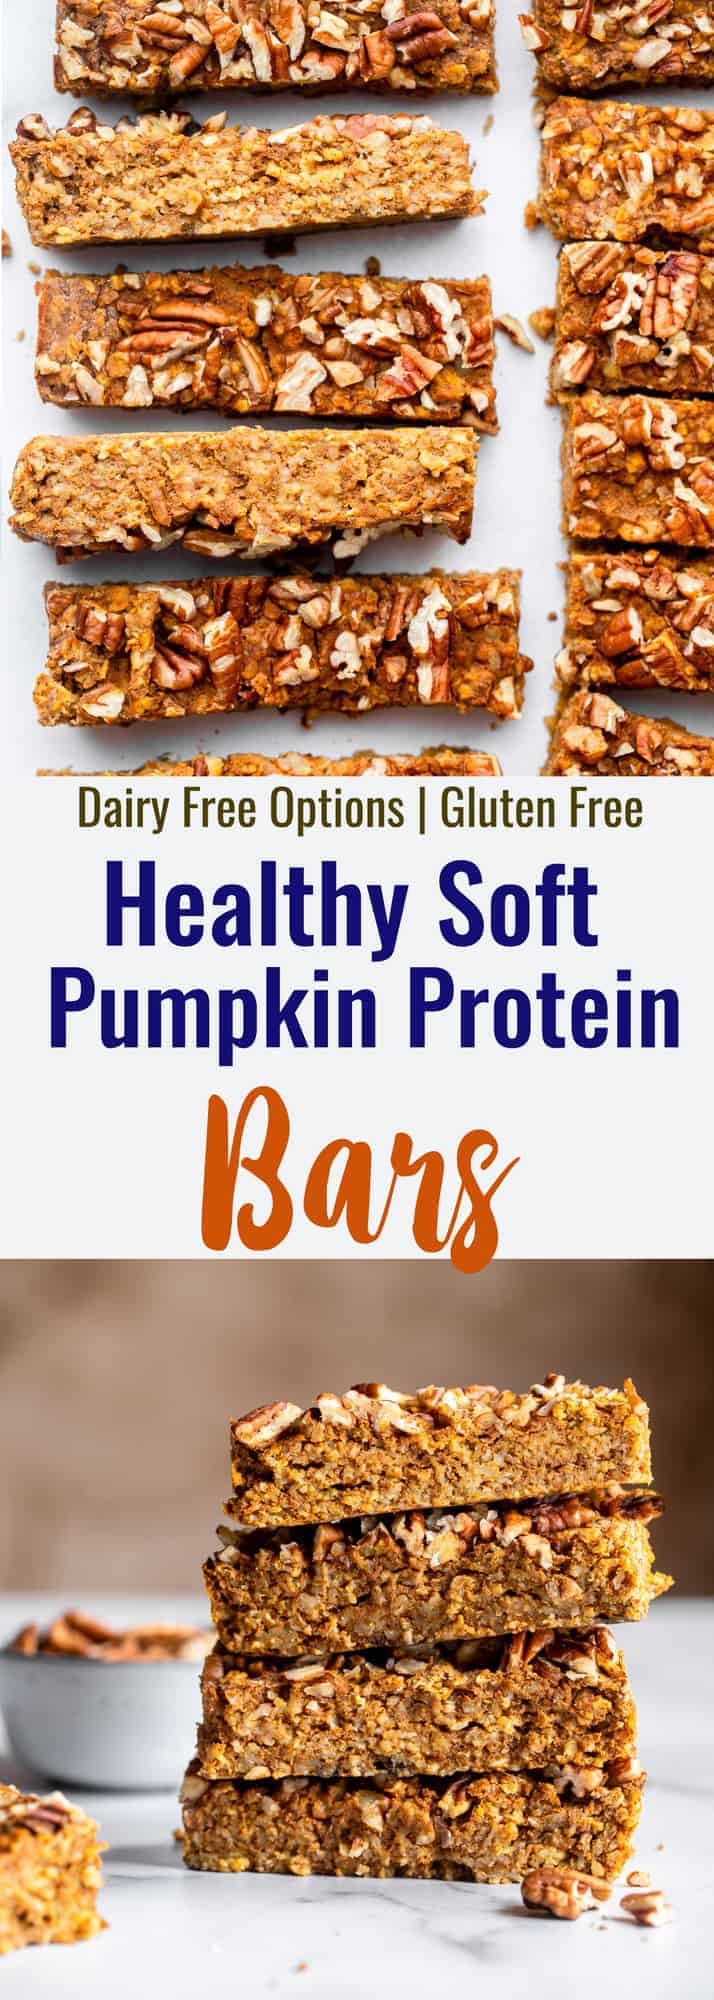 homemade pumpkin protein bars collage photo